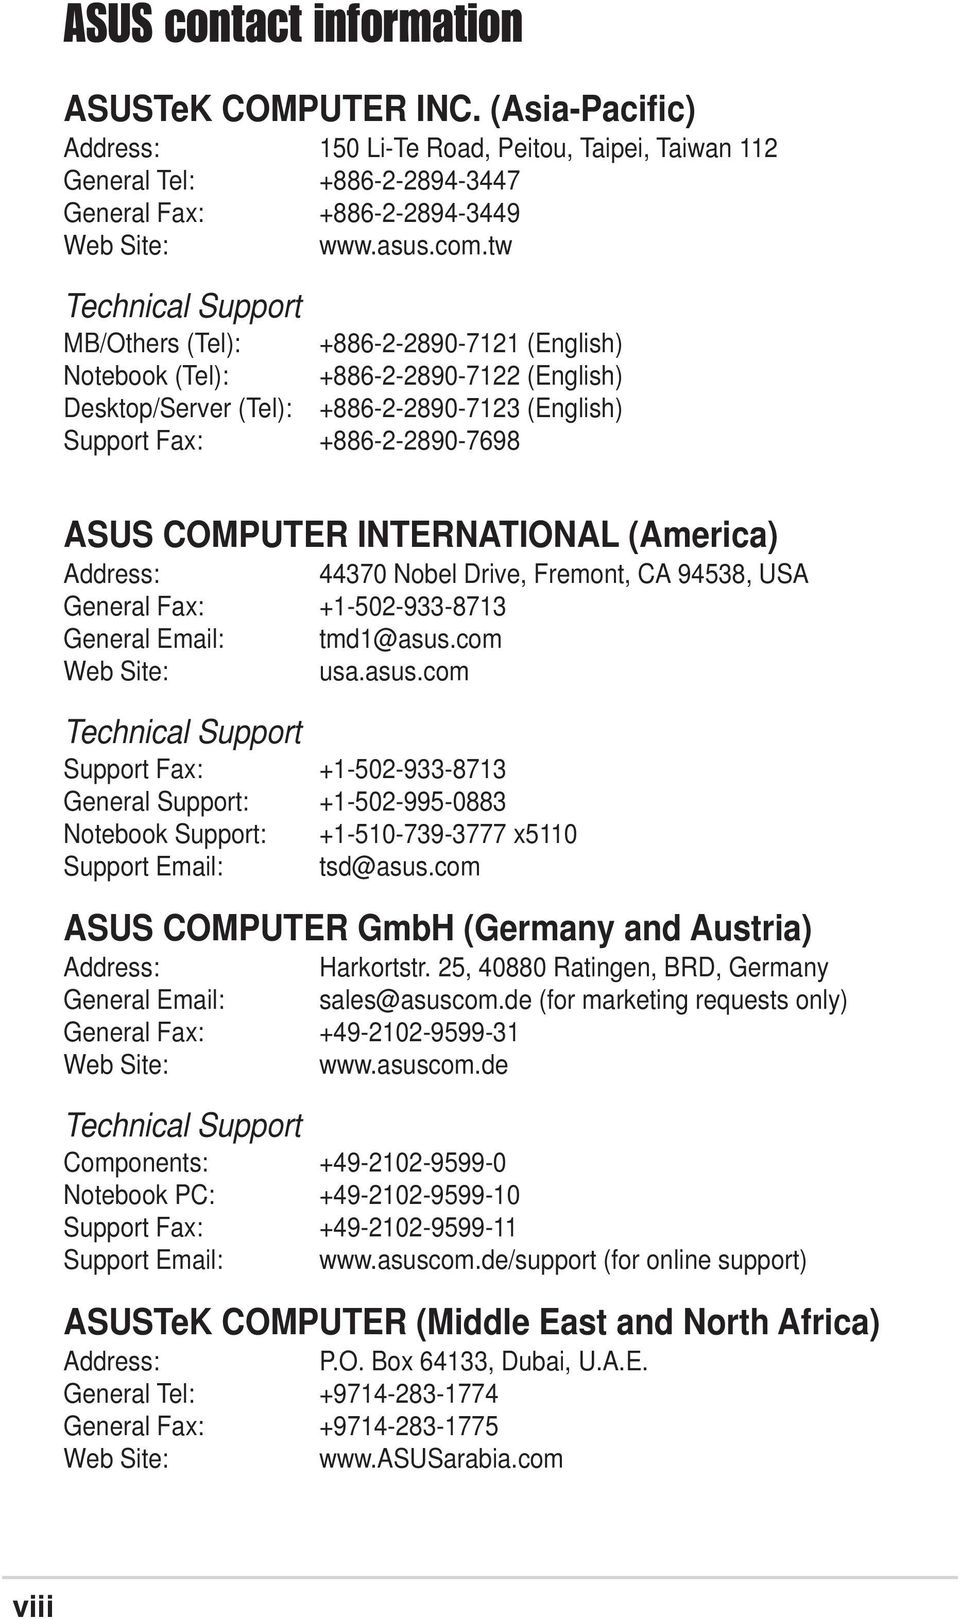 COMPUTER INTERNATIONAL (America) Address: 44370 Nobel Drive, Fremont, CA 94538, USA General Fax: +1-502-933-8713 General Email: tmd1@asus.